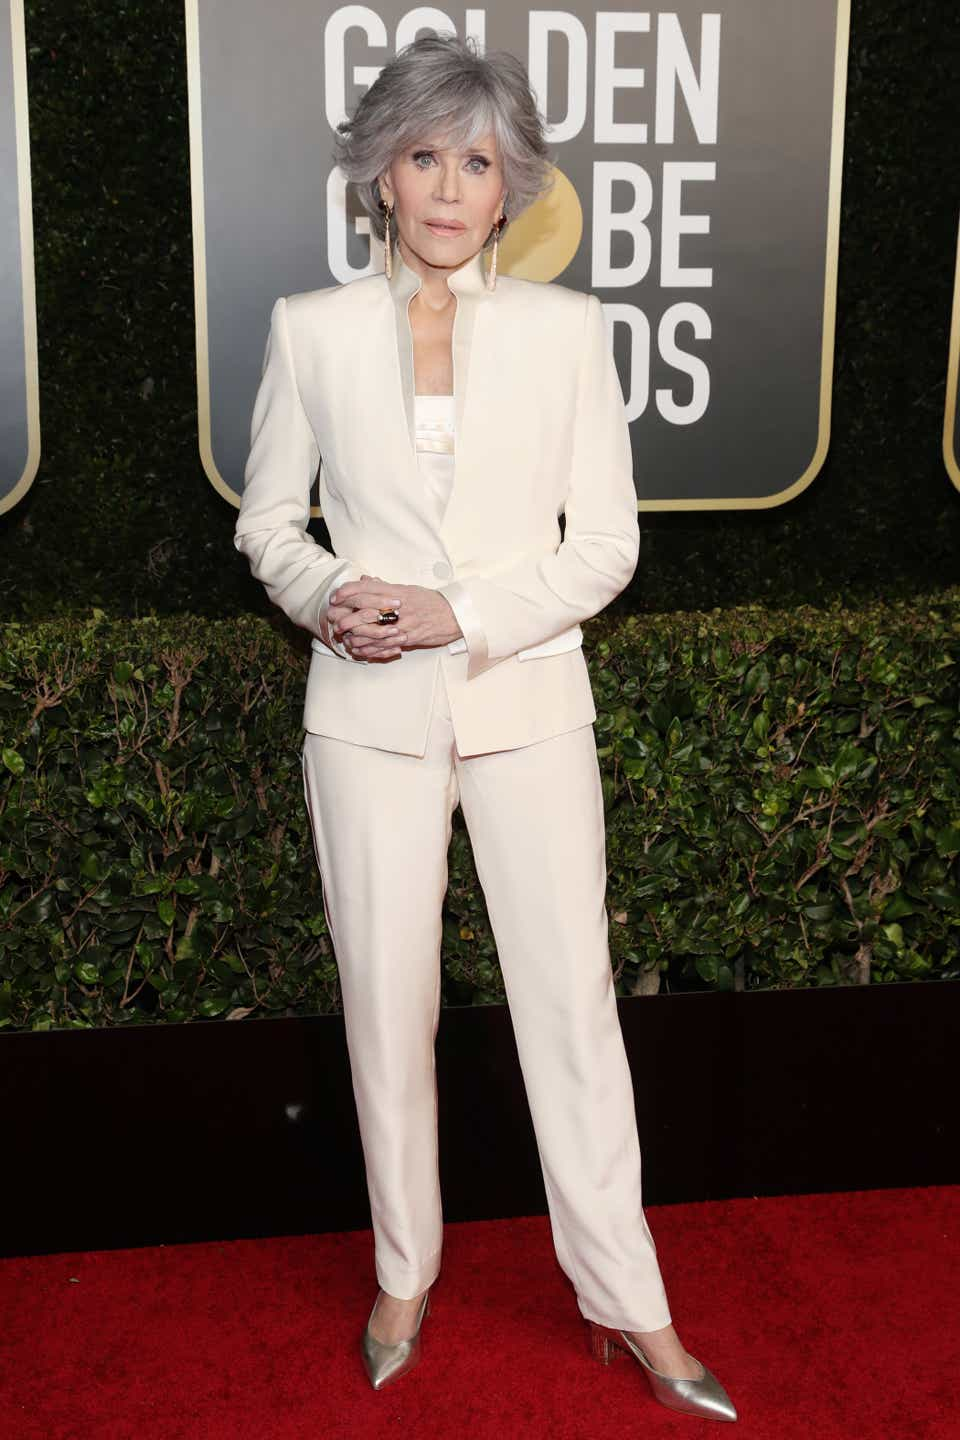 Jane Fonda in a white suit at the Golden Globes.